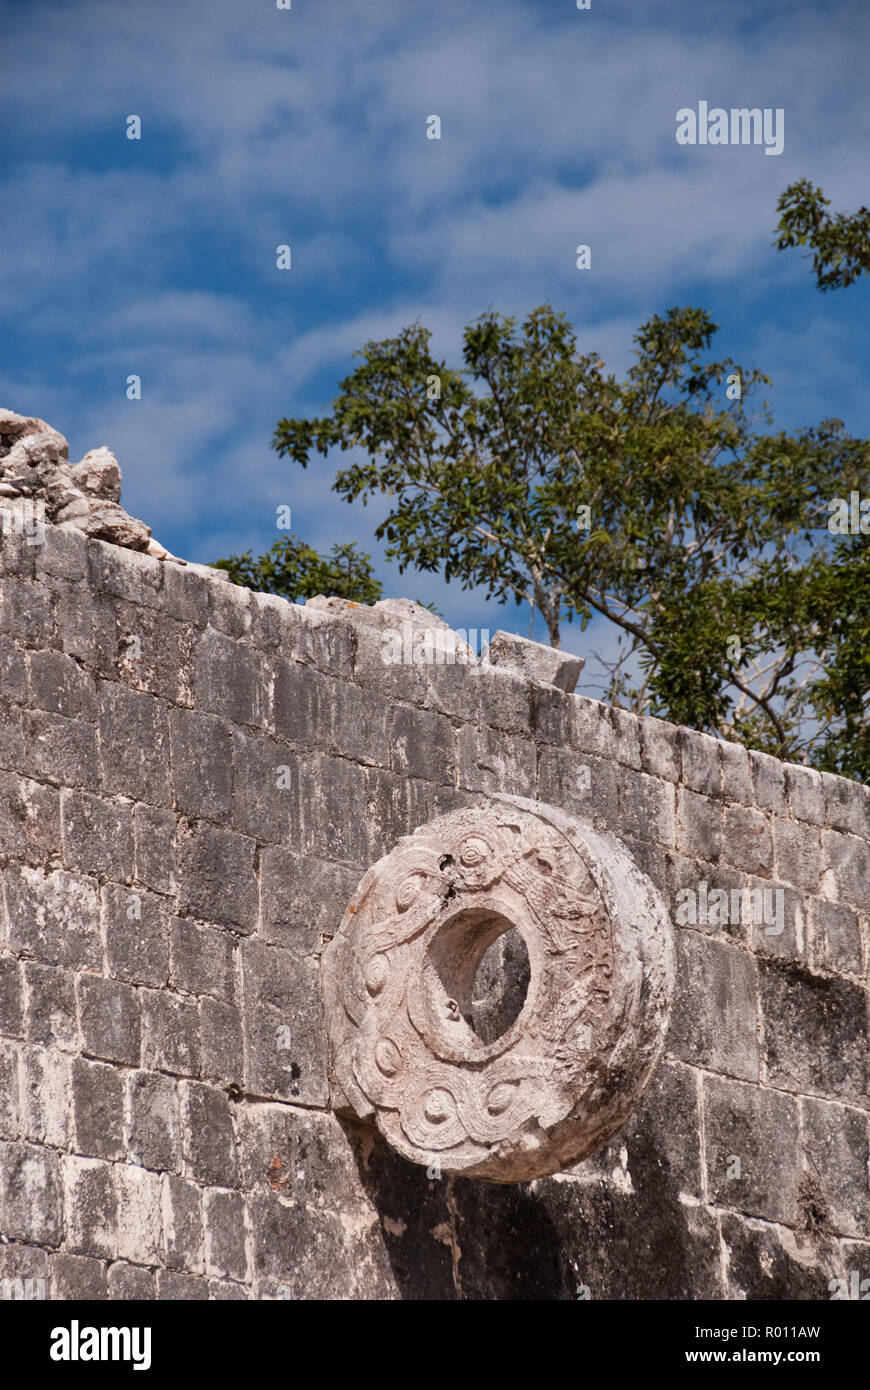 A stone ring at the Great Ball Court (Gran Juego de Pelota), used to play a Mesoamerican ballgame, Chichen Itza, Yucatan, Mexico. - Stock Image